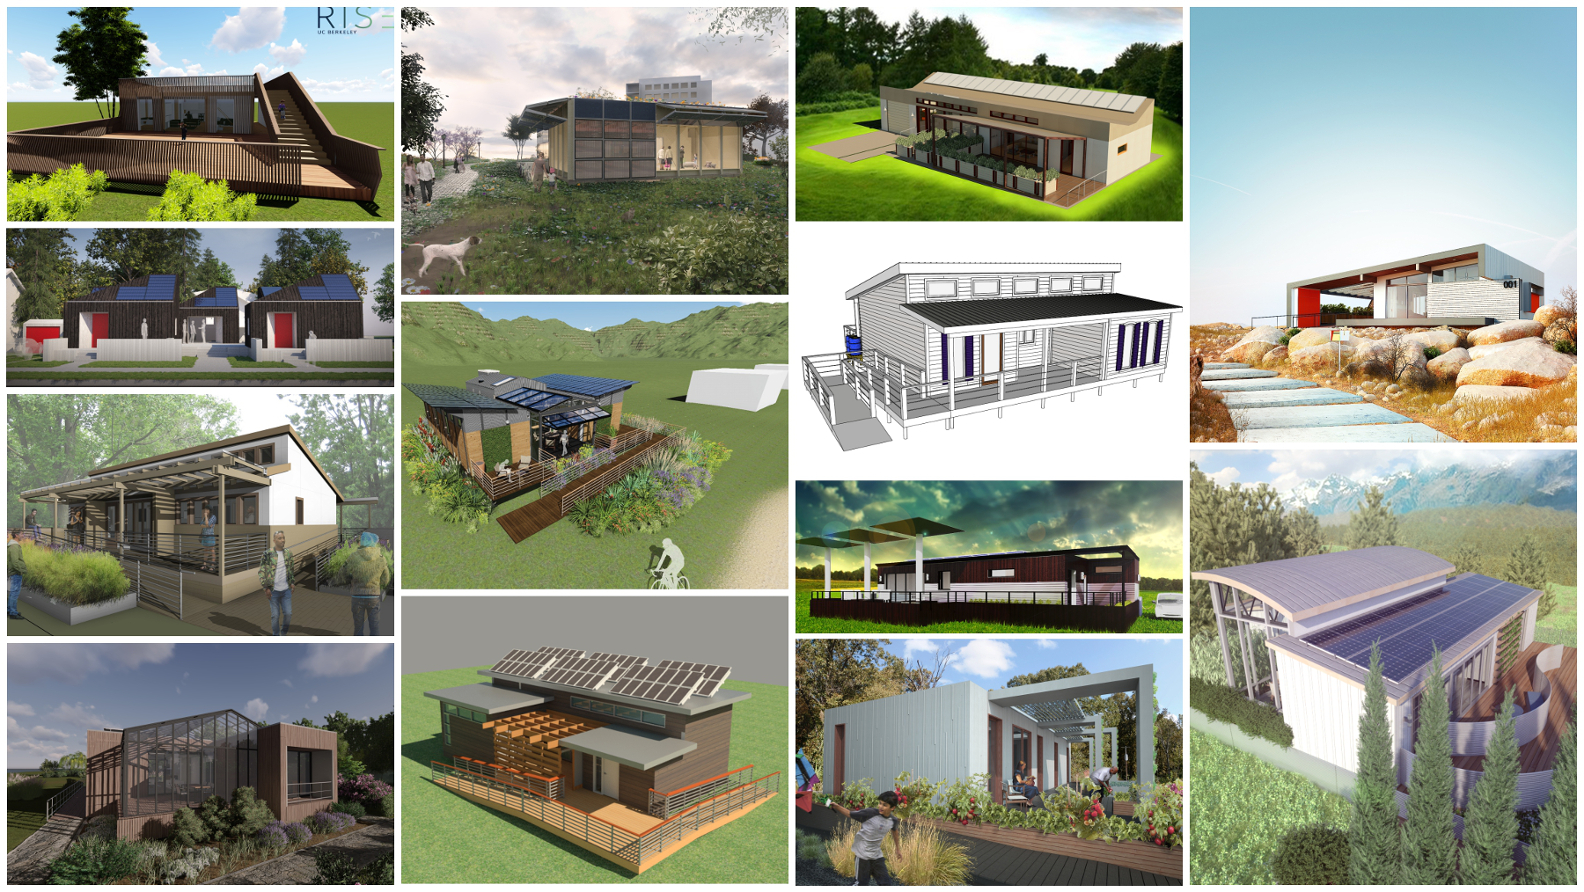 Photo of various renderings of Solar Decathlon 2017 homes.